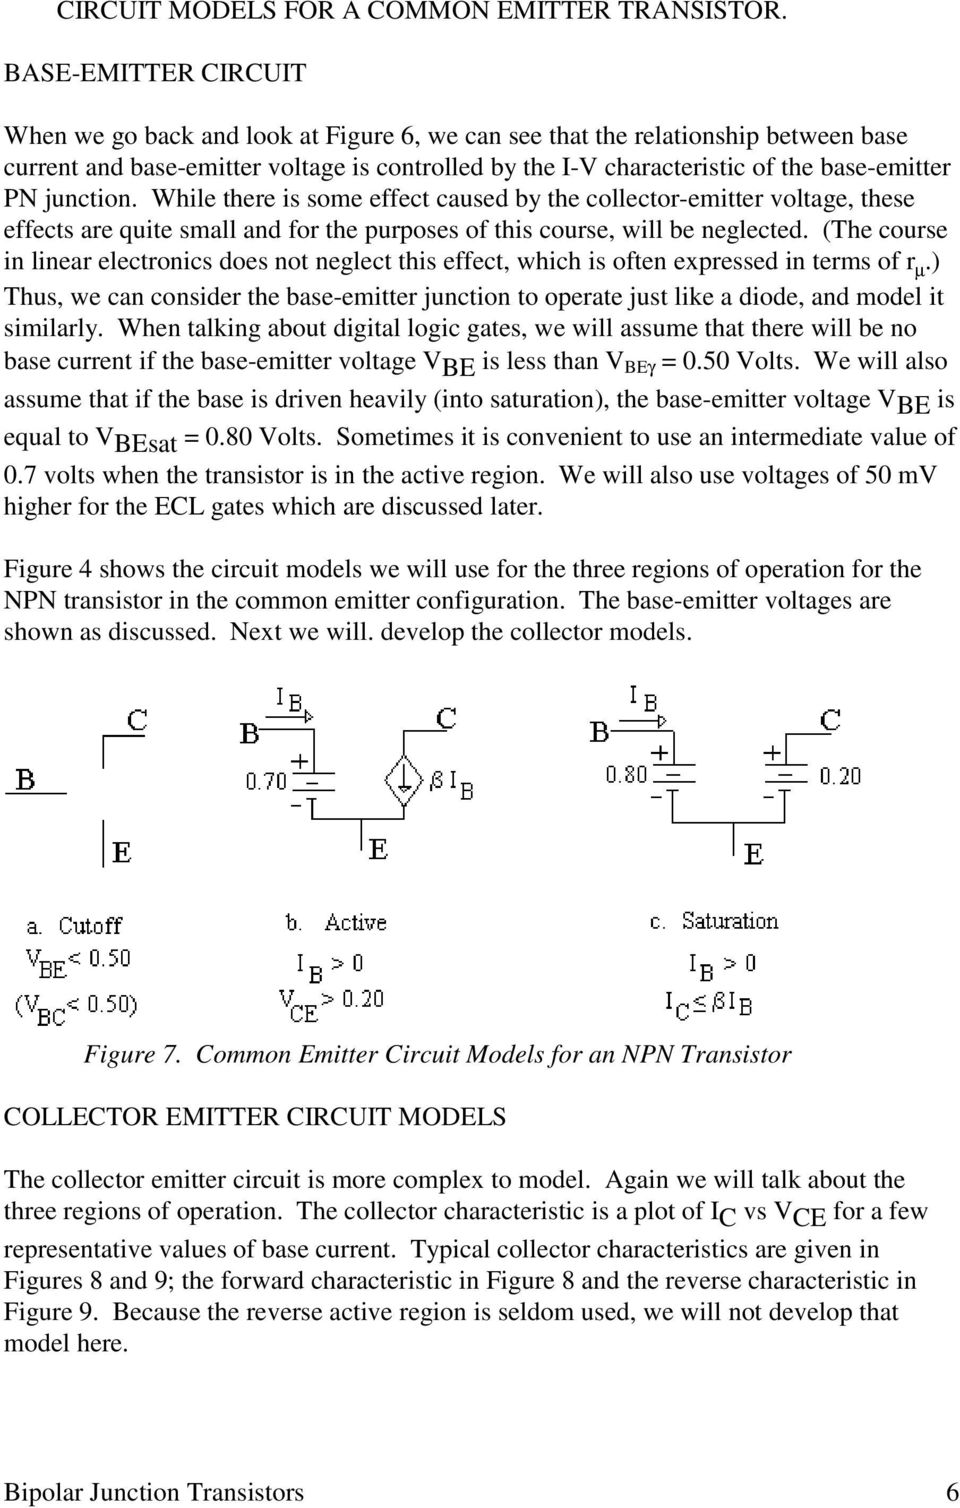 Bipolar Junction Transistors Pdf Npn Transistor Circuit While There Is Some Effect Caused By The Collector Emitter Voltage